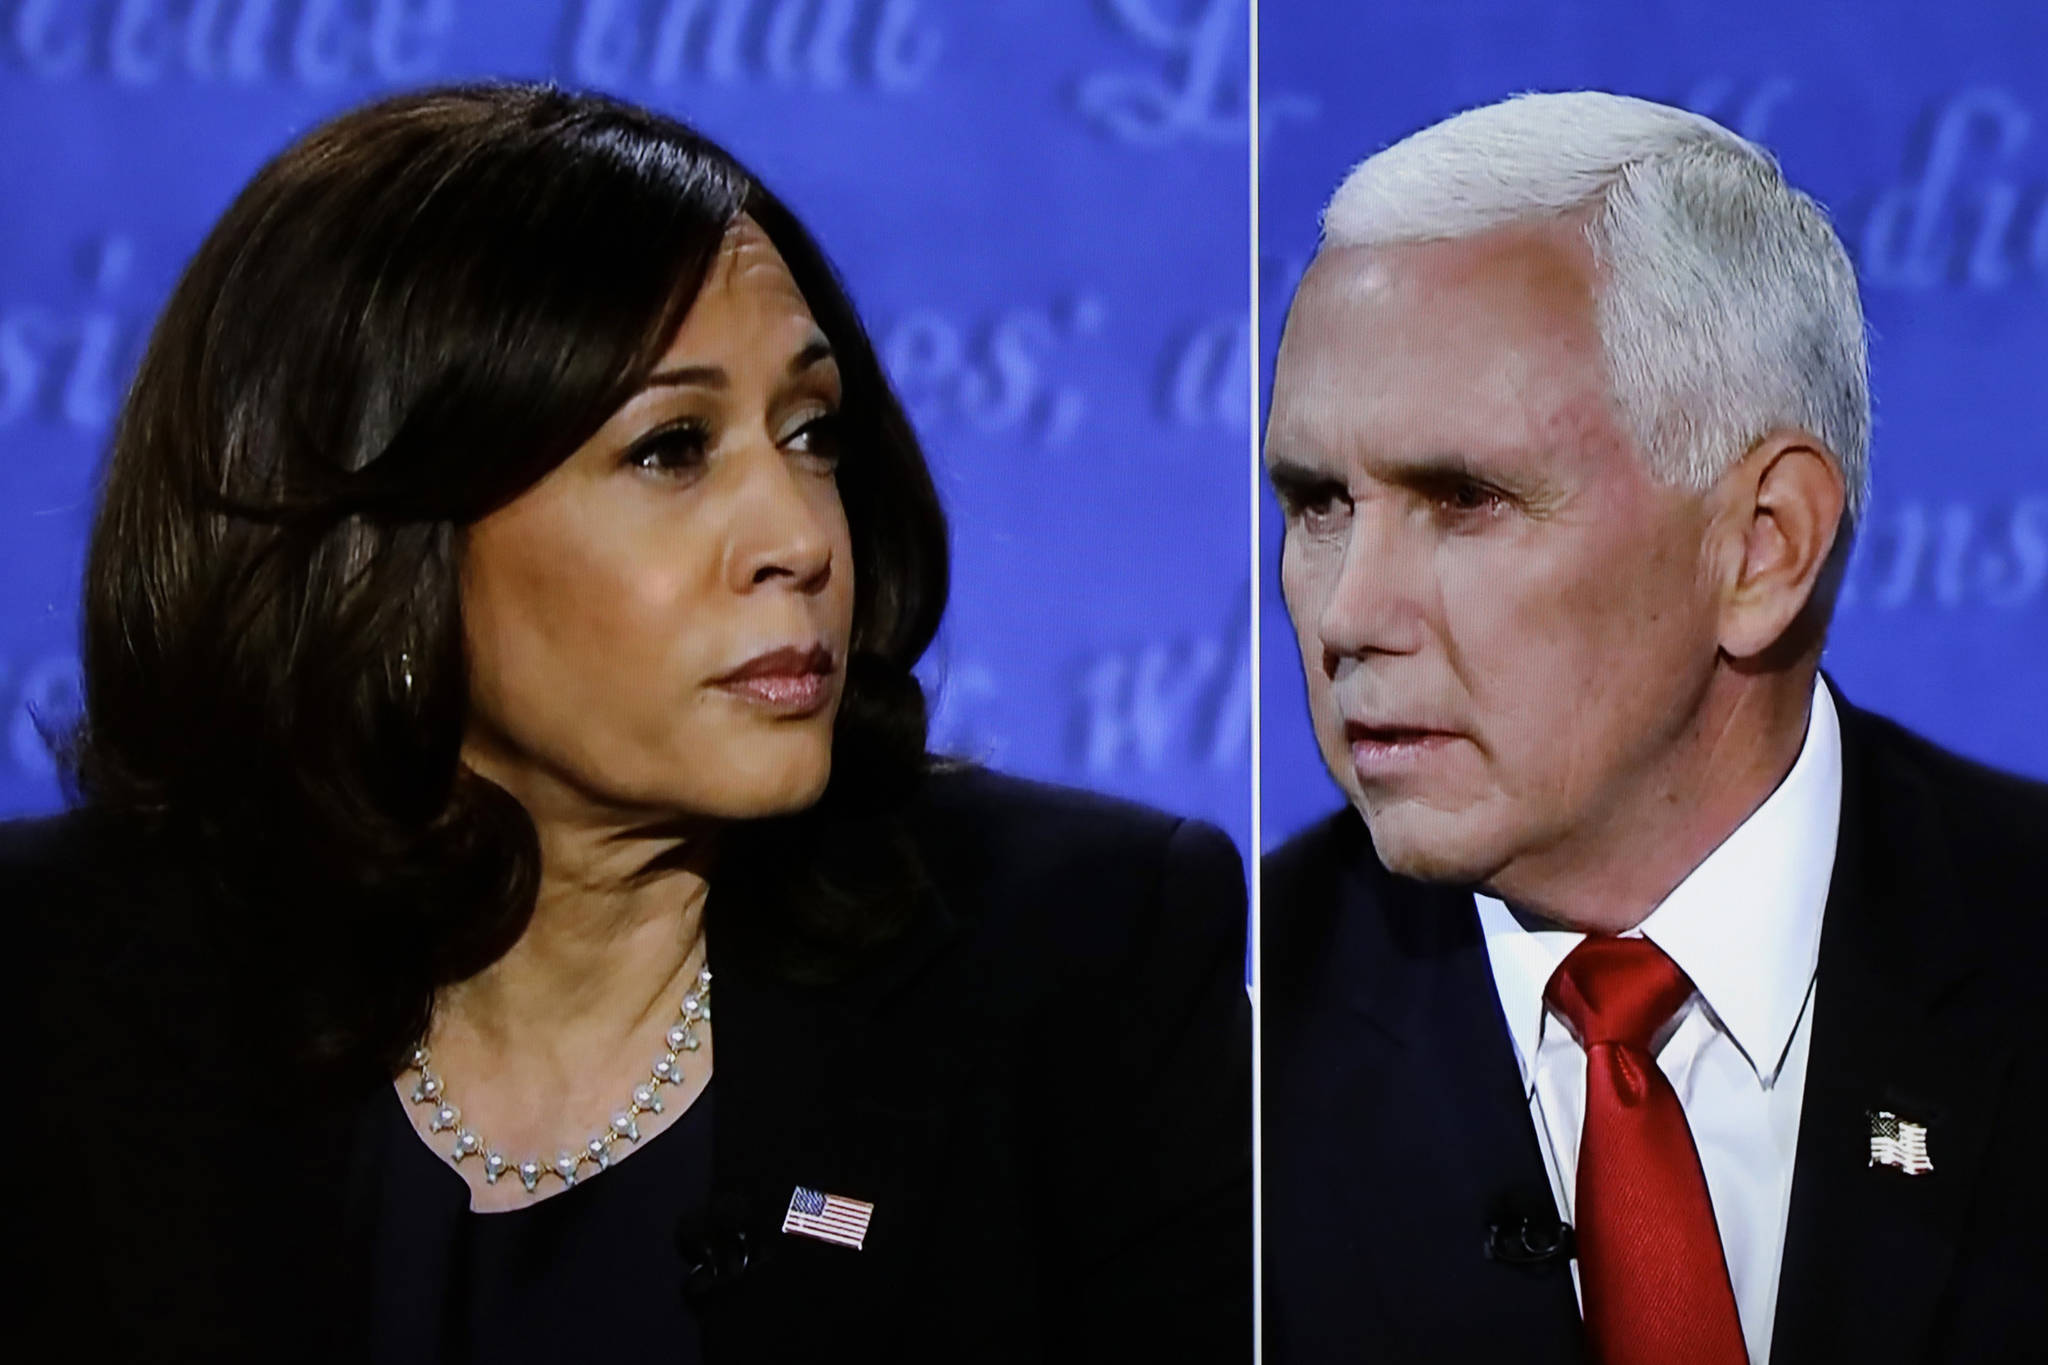 The vice presidential campaign debate between Democratic vice presidential nominee Sen. Kamala Harris (D-CA) and Vice President Mike Pence in Salt Lake City, Utah, is seen on TV in Washington, D.C., on Wednesday, Oct. 7, 2020. (Yuri Gripas/Abaca Press/TNS)